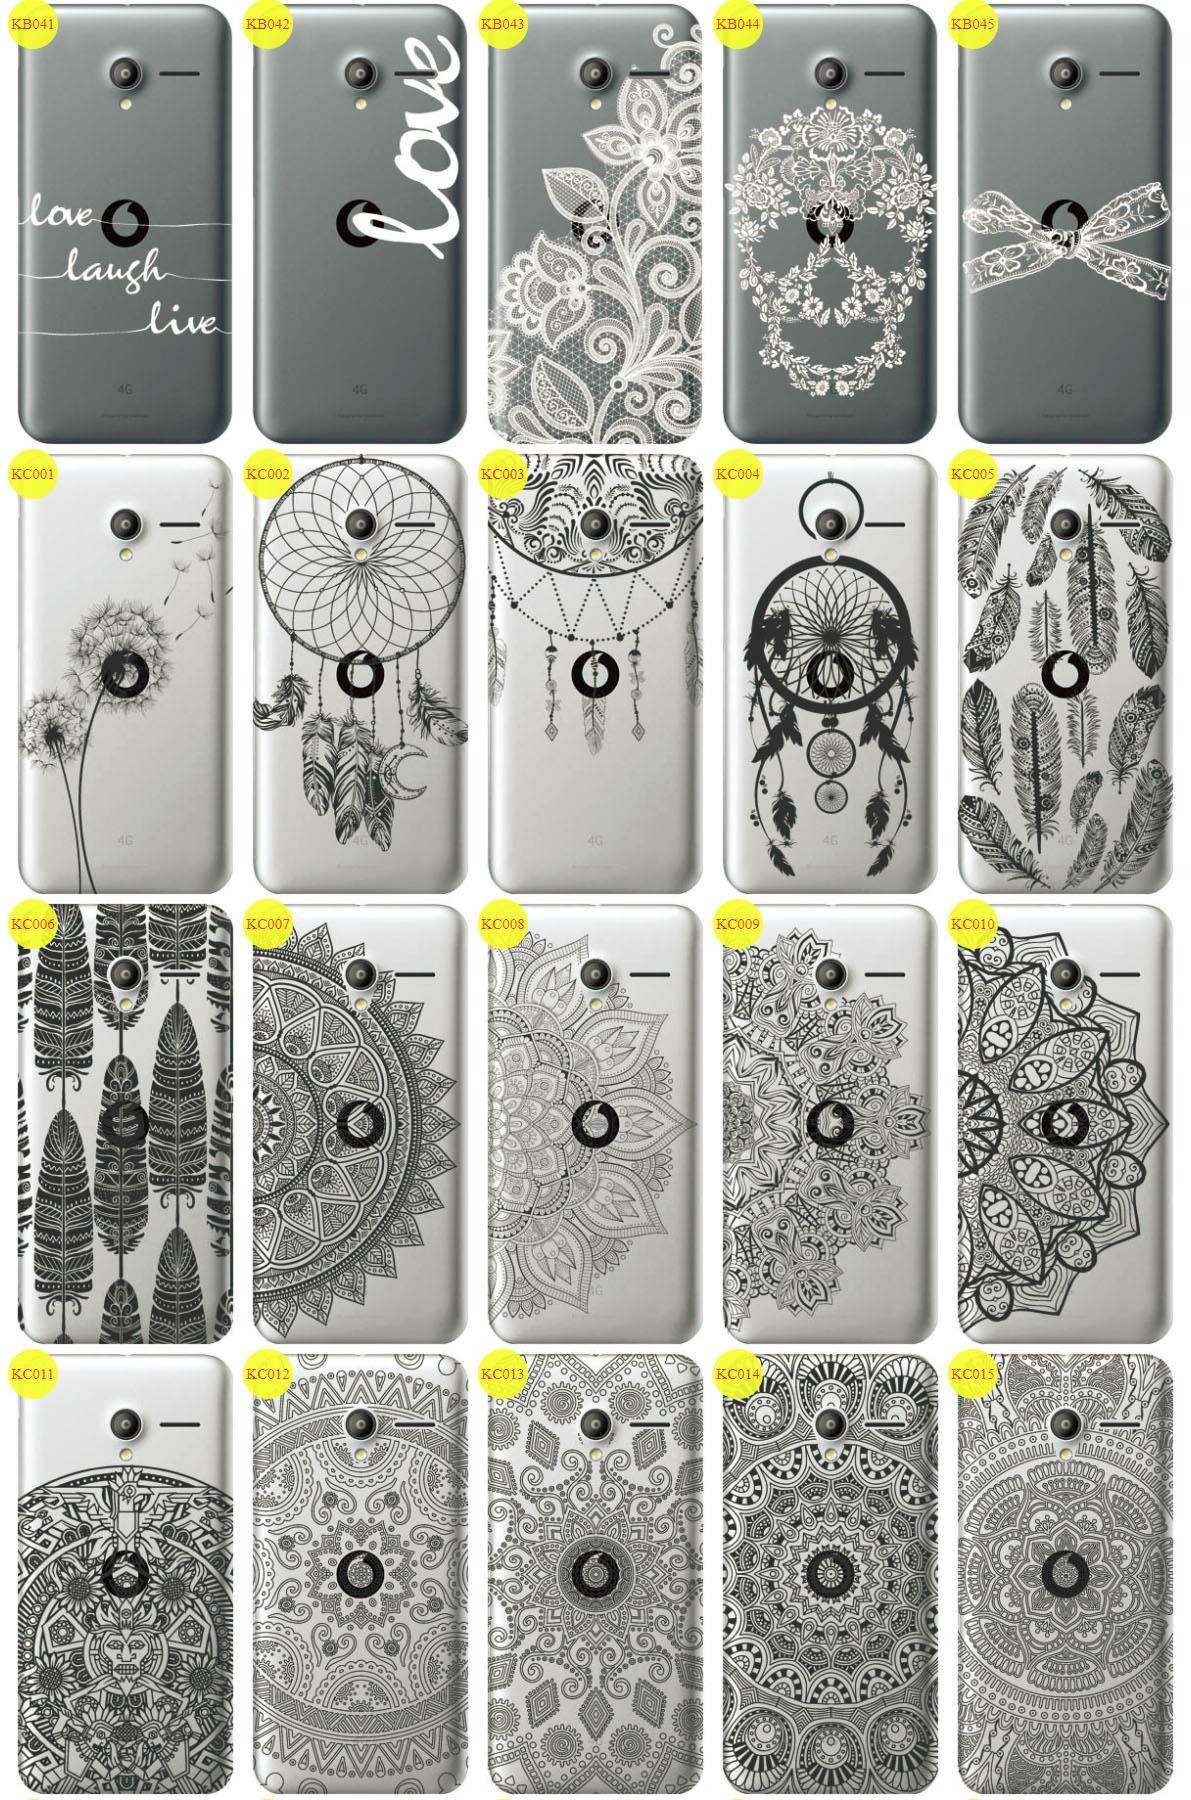 Back Case Cover Kreatui LaceCase VODAFONE SMART SPEED 6 + GLASS 9H